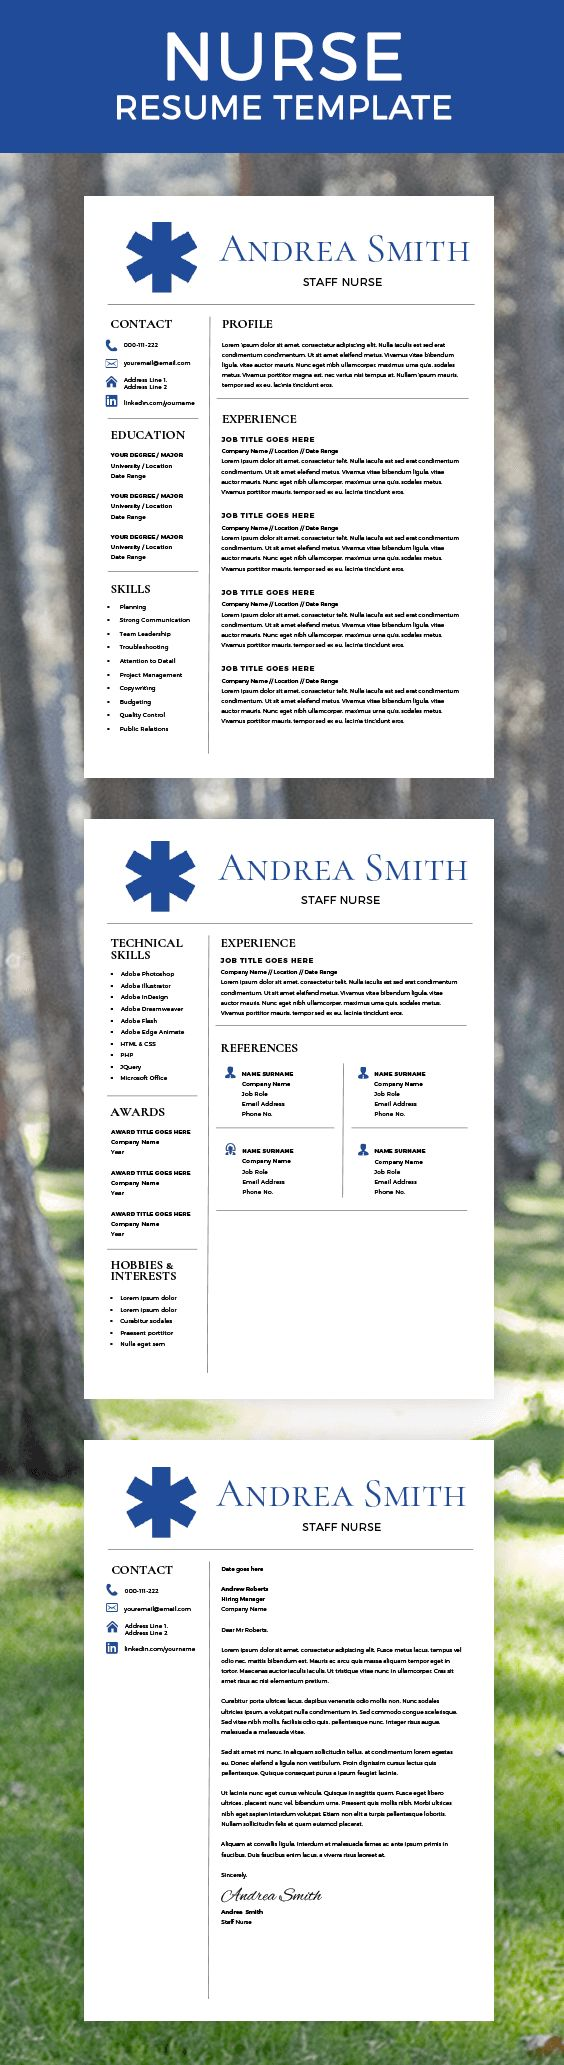 Resume Template For Nursing Assistant   Resume Sample Best 25 Nursing Resume Template Ideas On Pinterest